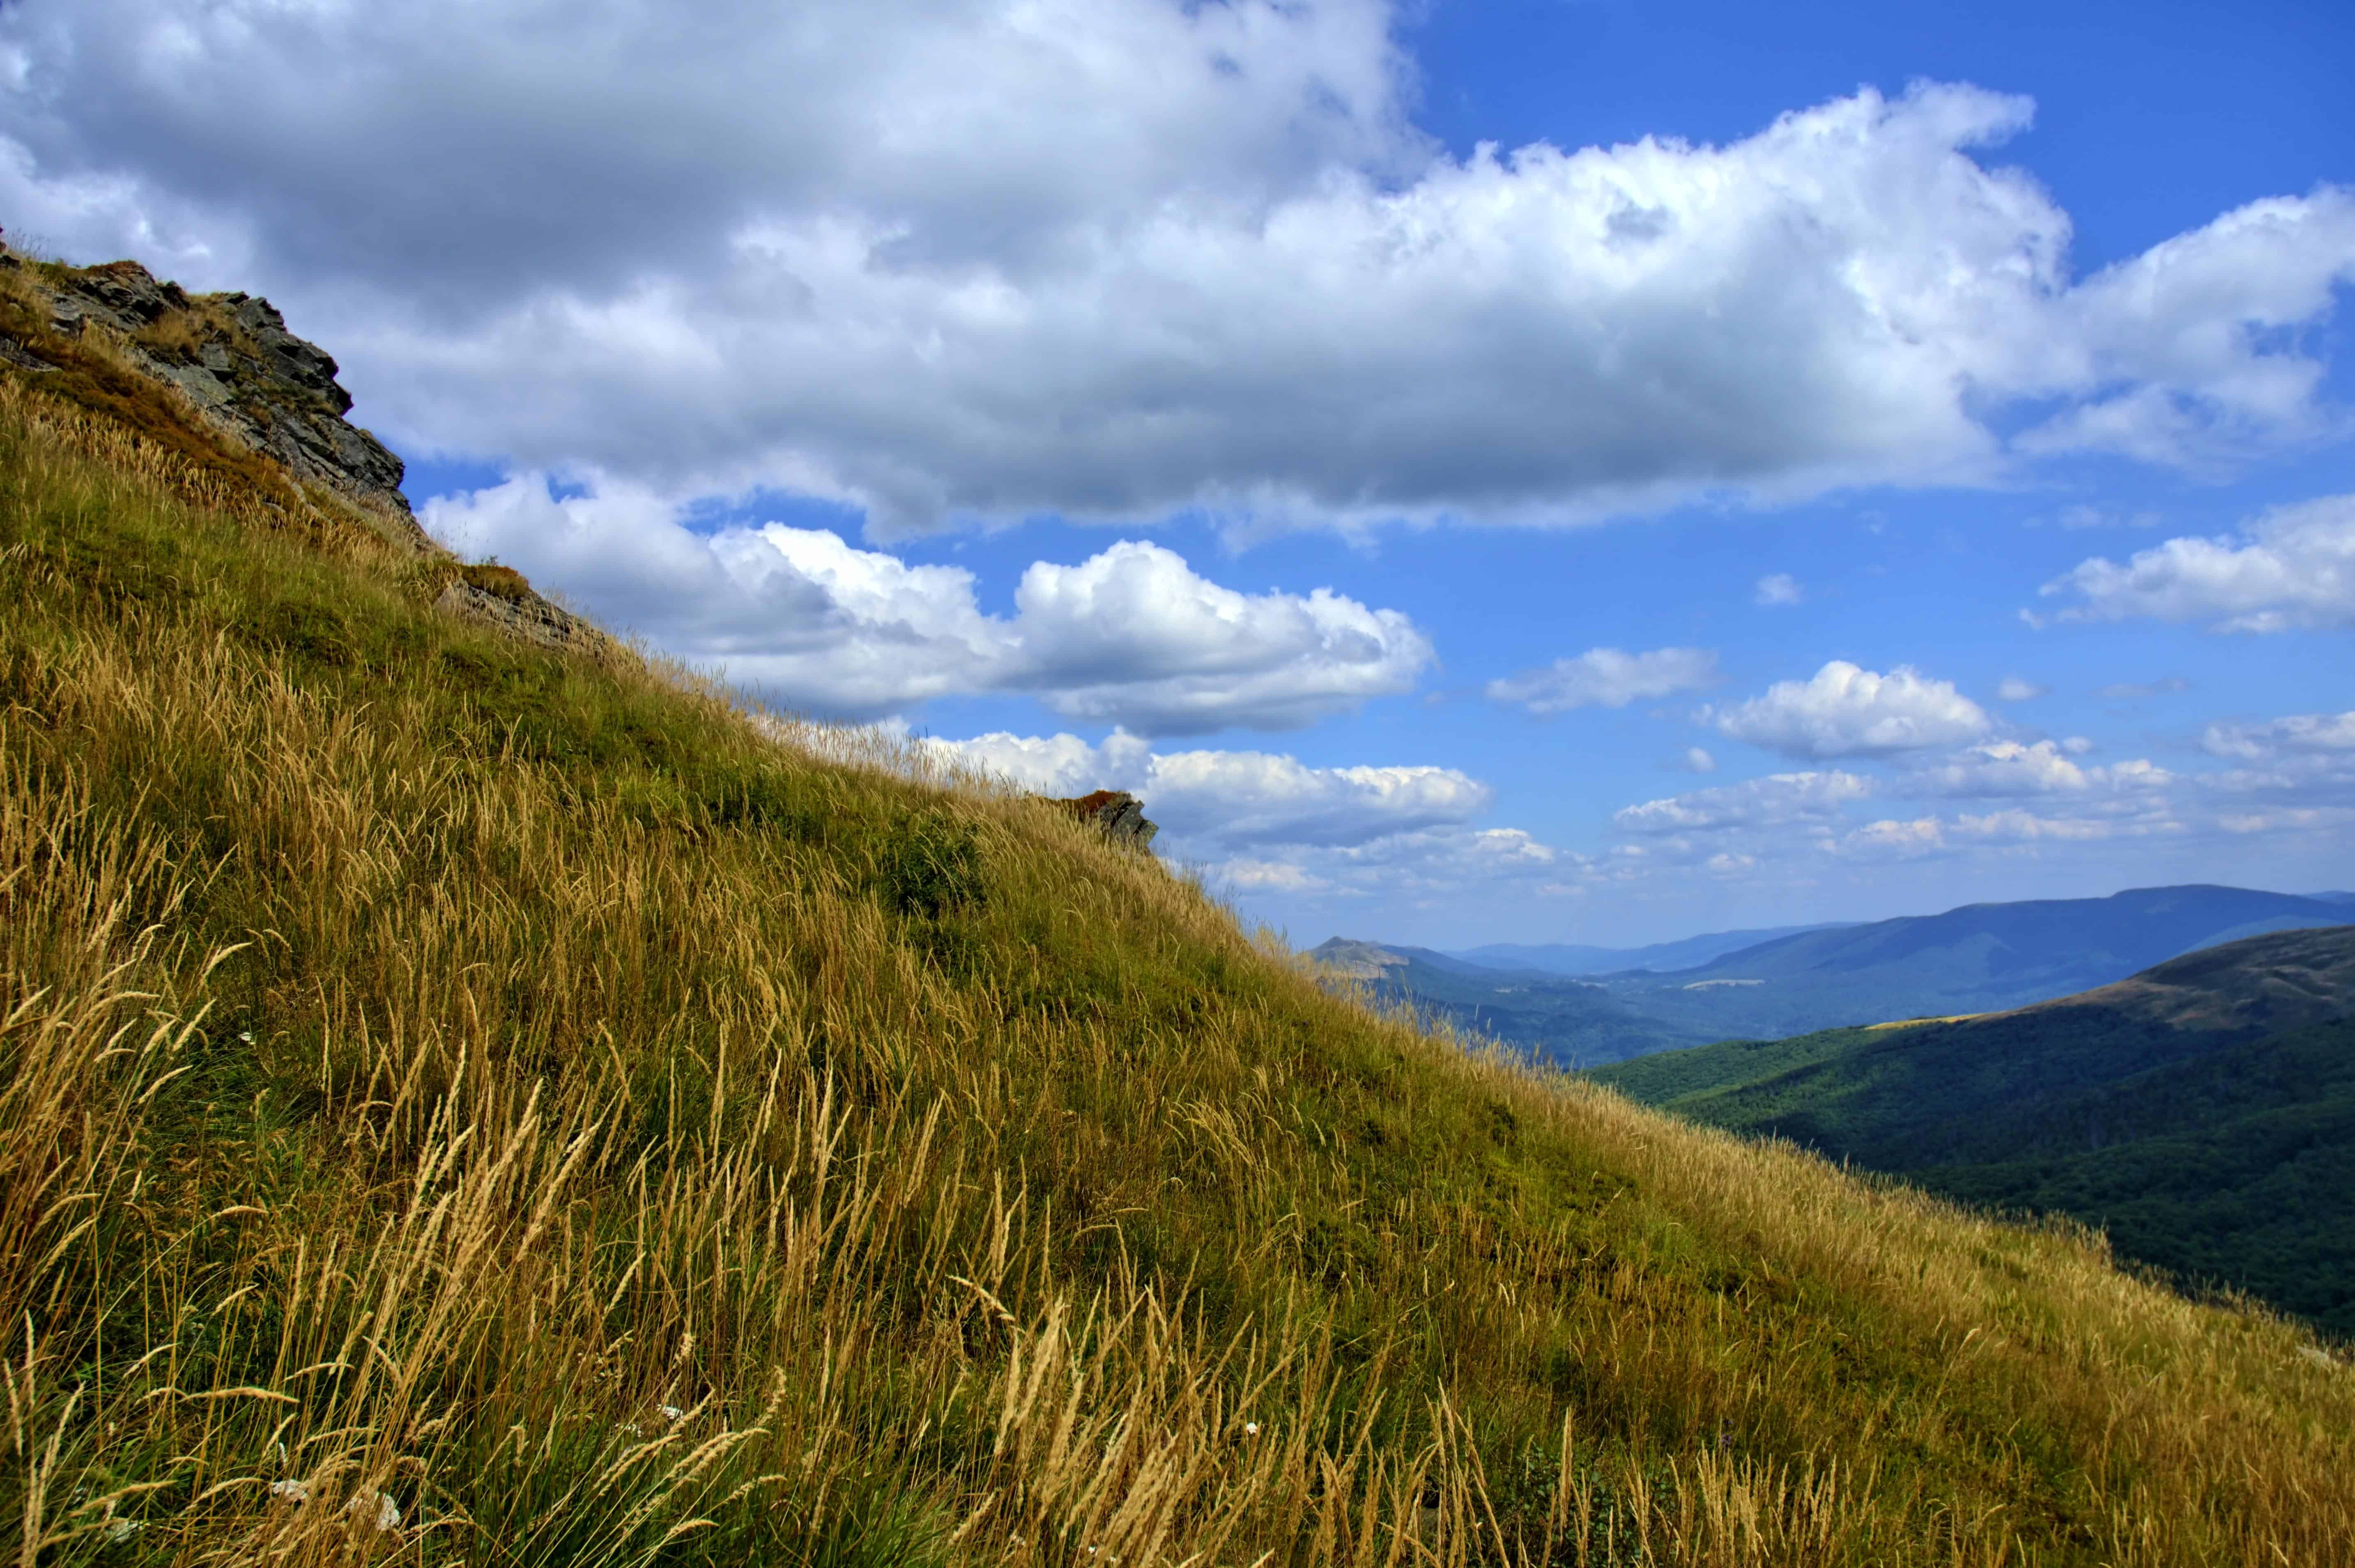 Blue Wallpaper Hd Download Free Picture Mountain Grass Sky Landscape Nature